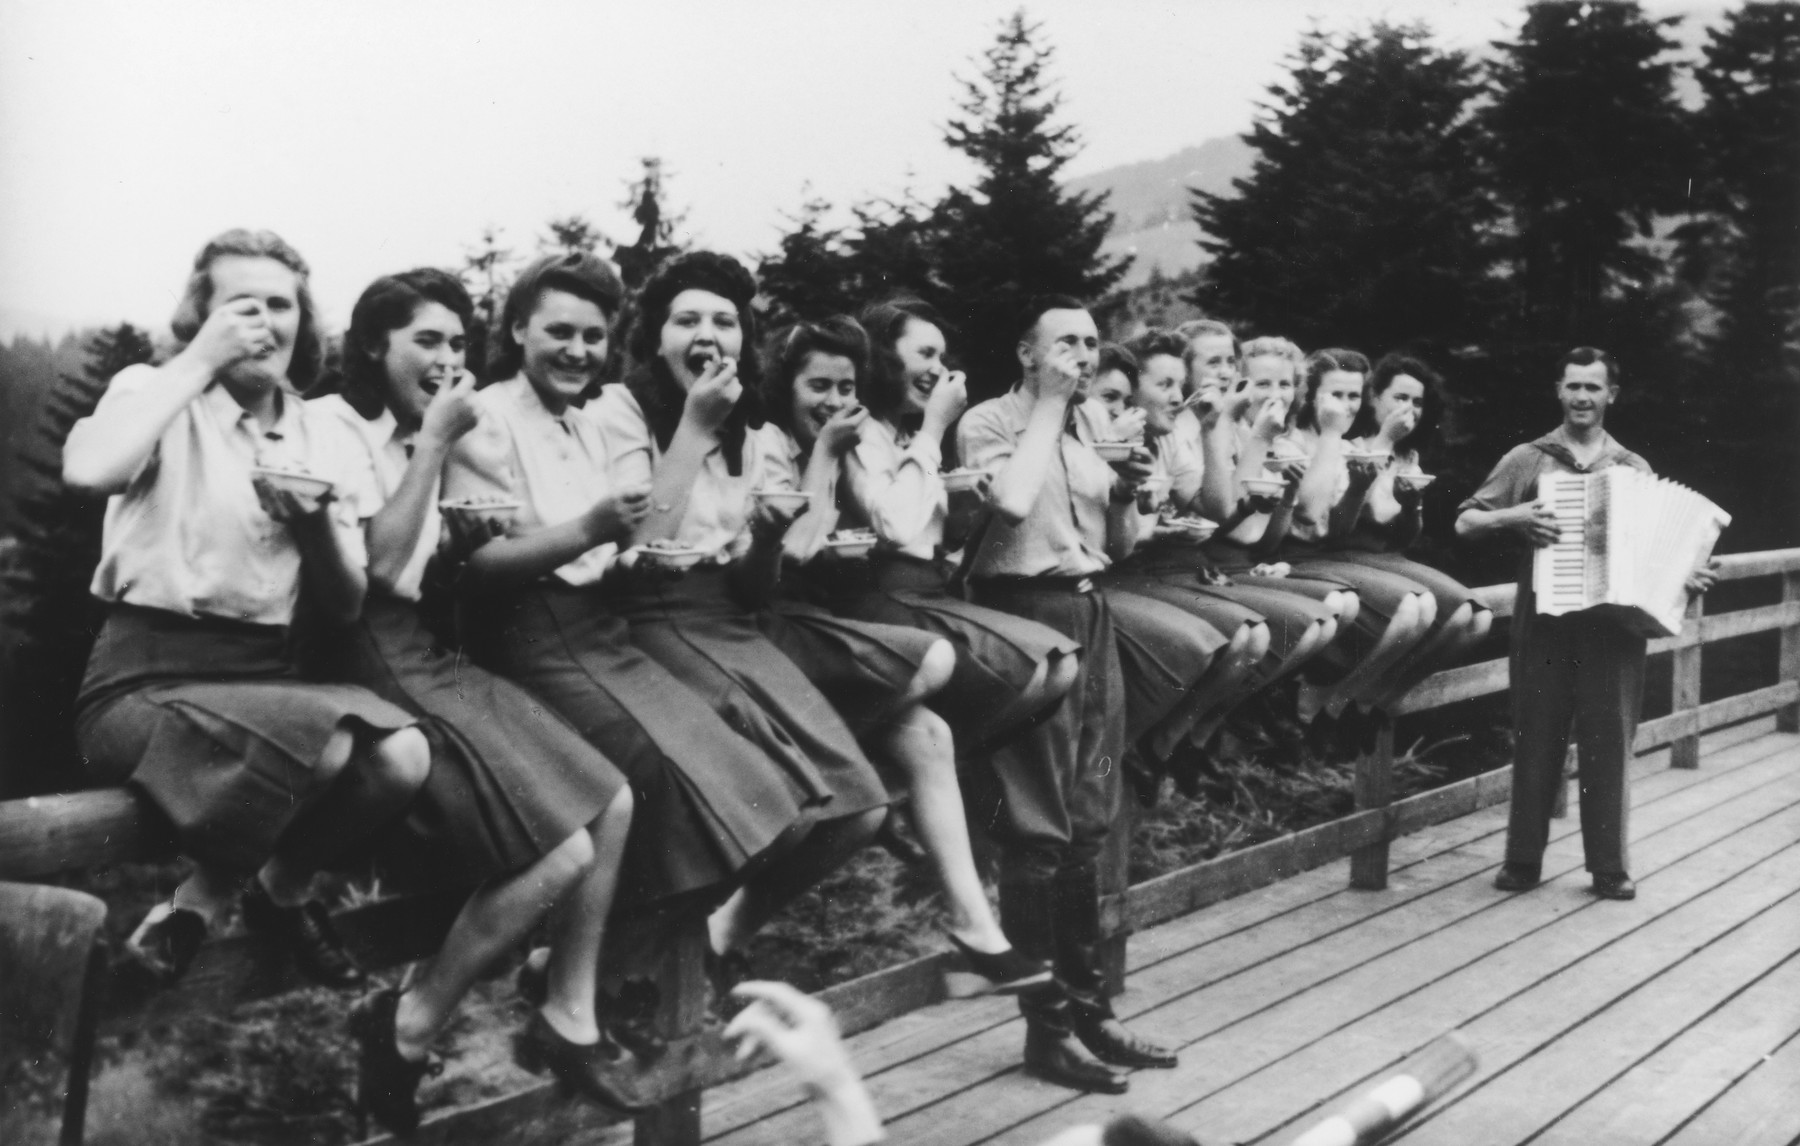 """Members of the SS Helferinnen (female auxiliaries) and SS officer Karl Hoecker sit on a fence railing in Solahuette eating bowls of blueberries.  In the background is a man playing the accordion.   The original caption reads """"Hier gibt es Blaubeeren"""" (there are blueberries here)."""